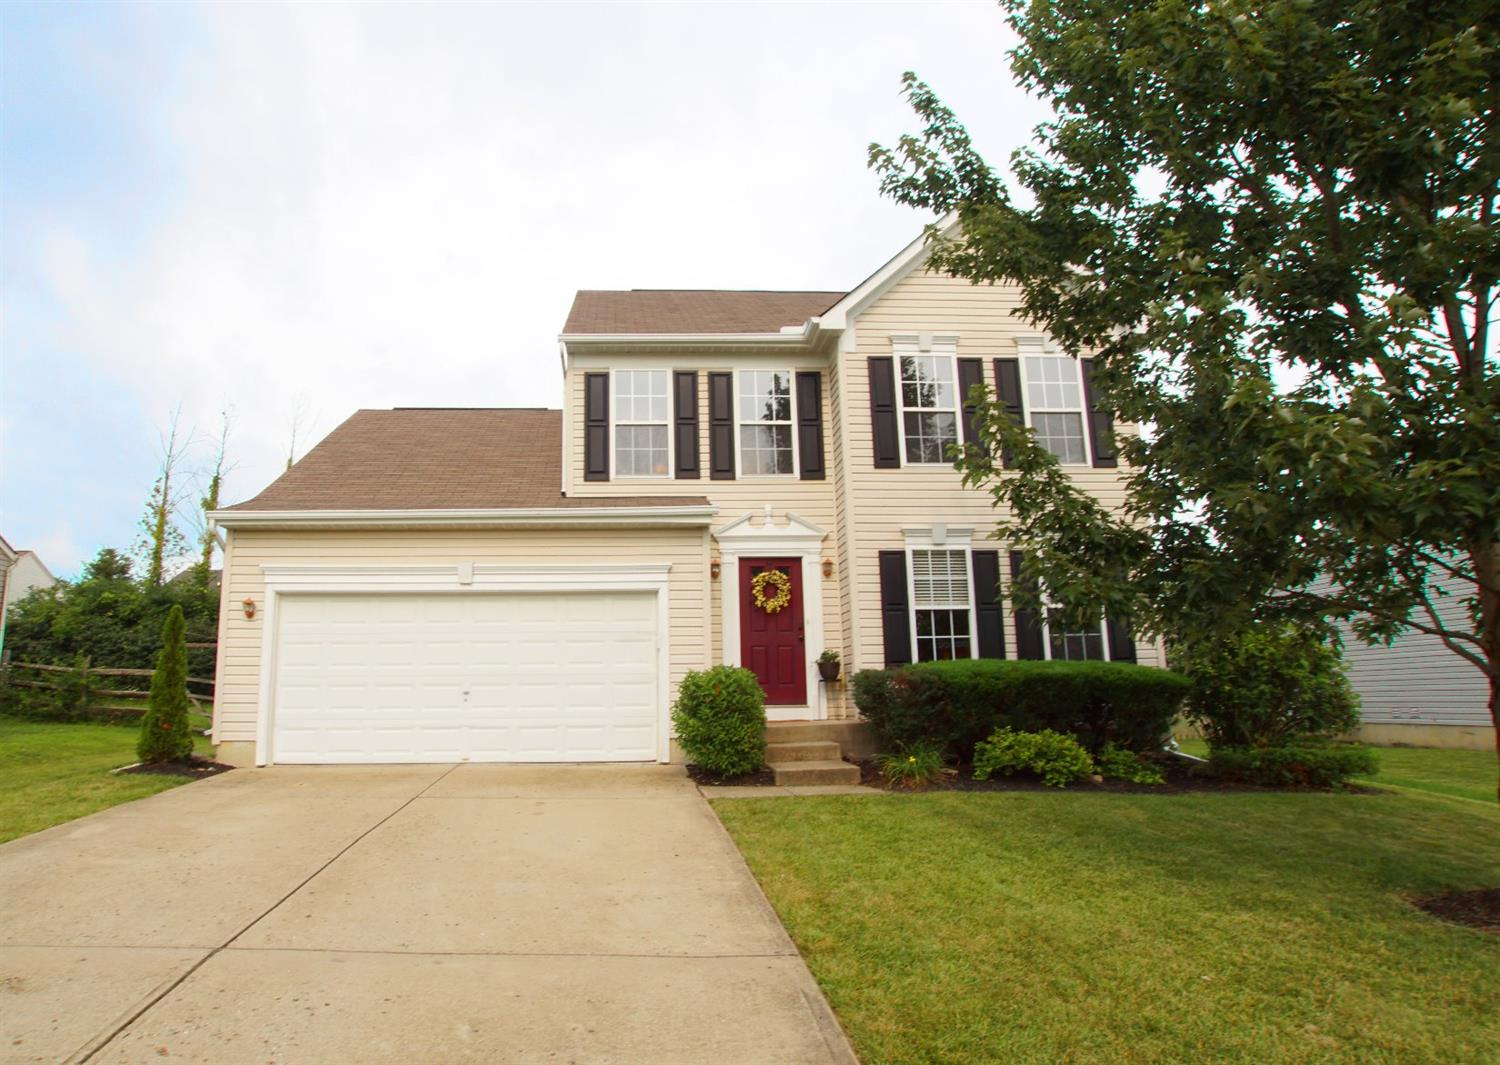 943 Whispering Pine Way, Lebanon, OH 45036